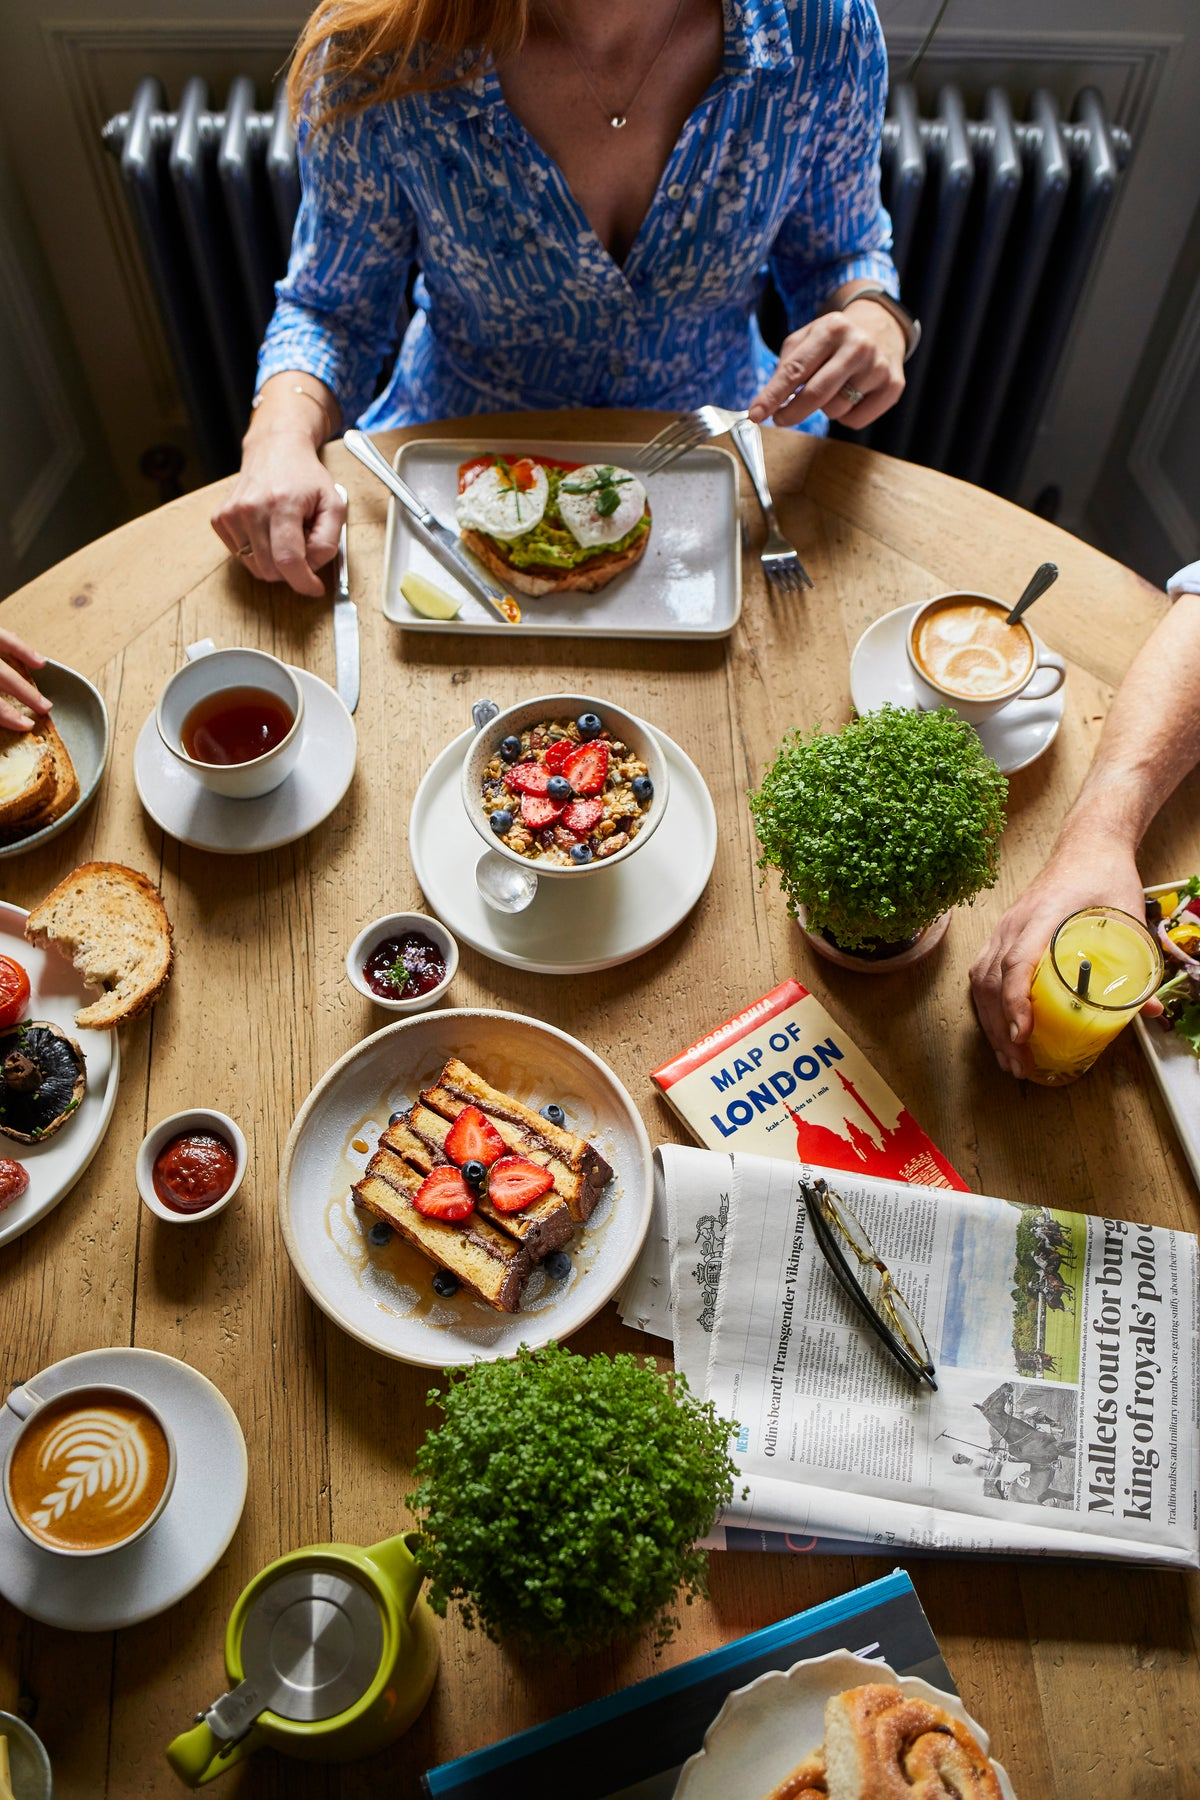 Lime Tree Hotel, London, UK - The Buttery breakfast spread with toast, granola, coffee, tea, and newspaper